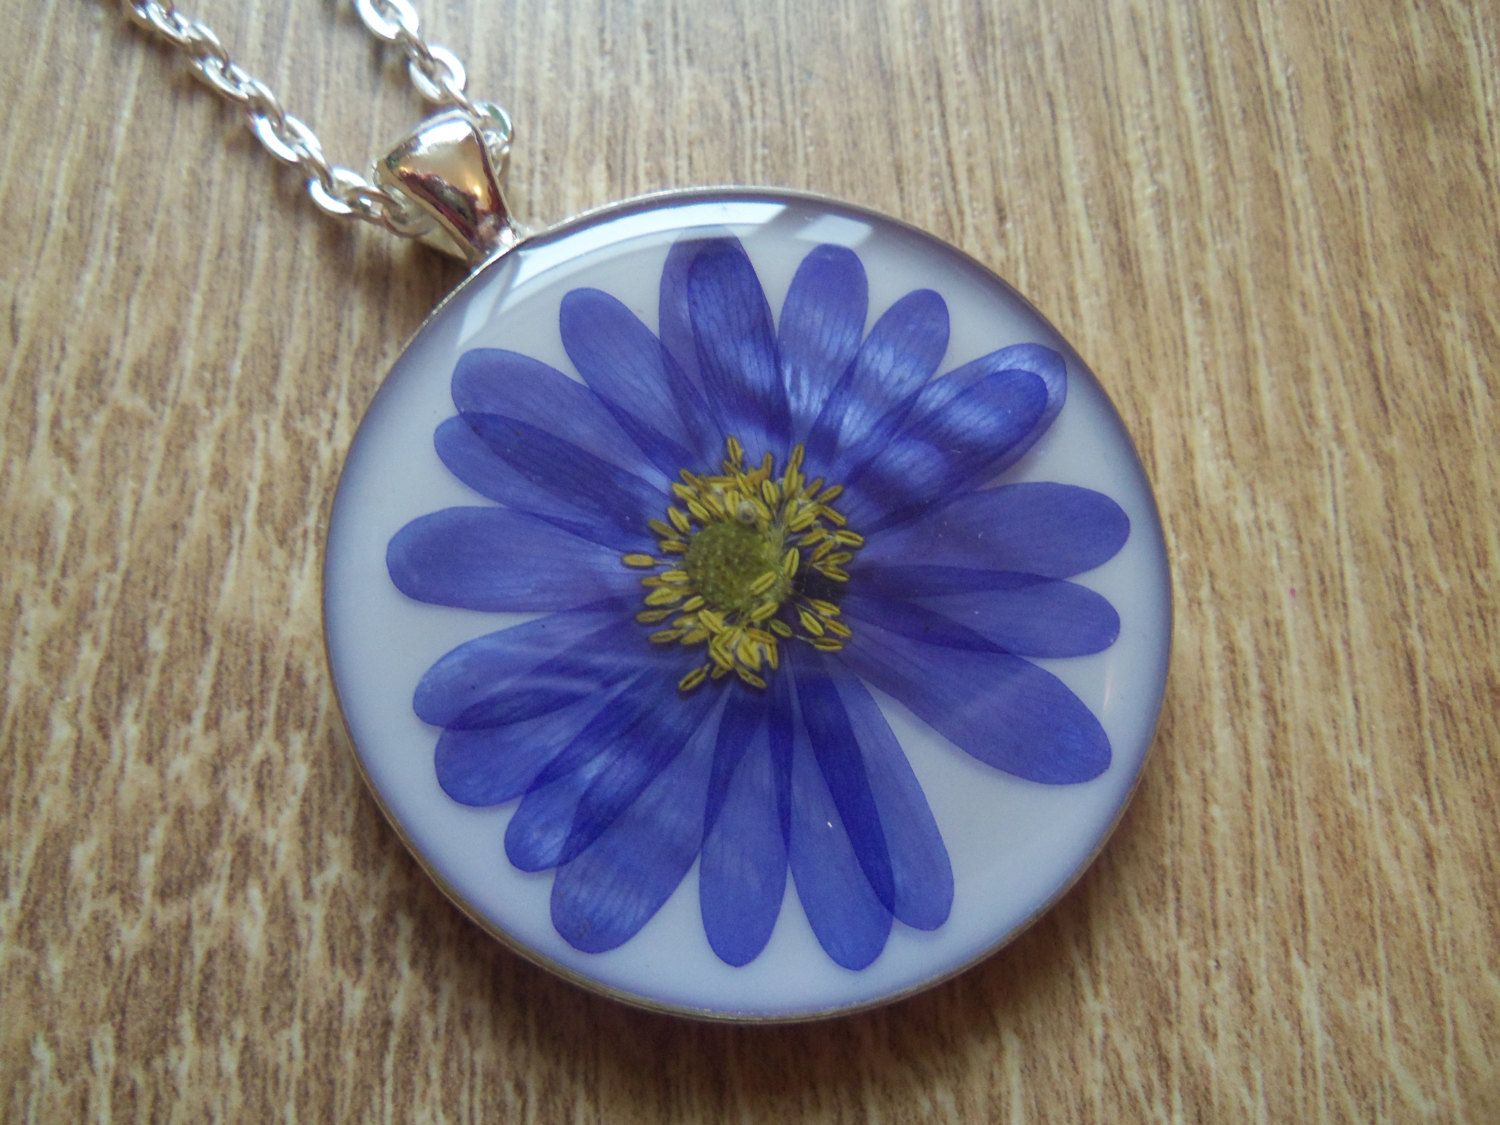 Real Flower Necklace Flower Pendant Dried Pressed Flower Anemone Necklace Resin Jewellery Purple Blue Flower Free Resin Jewelry Flower Jewellery Flower Pendant